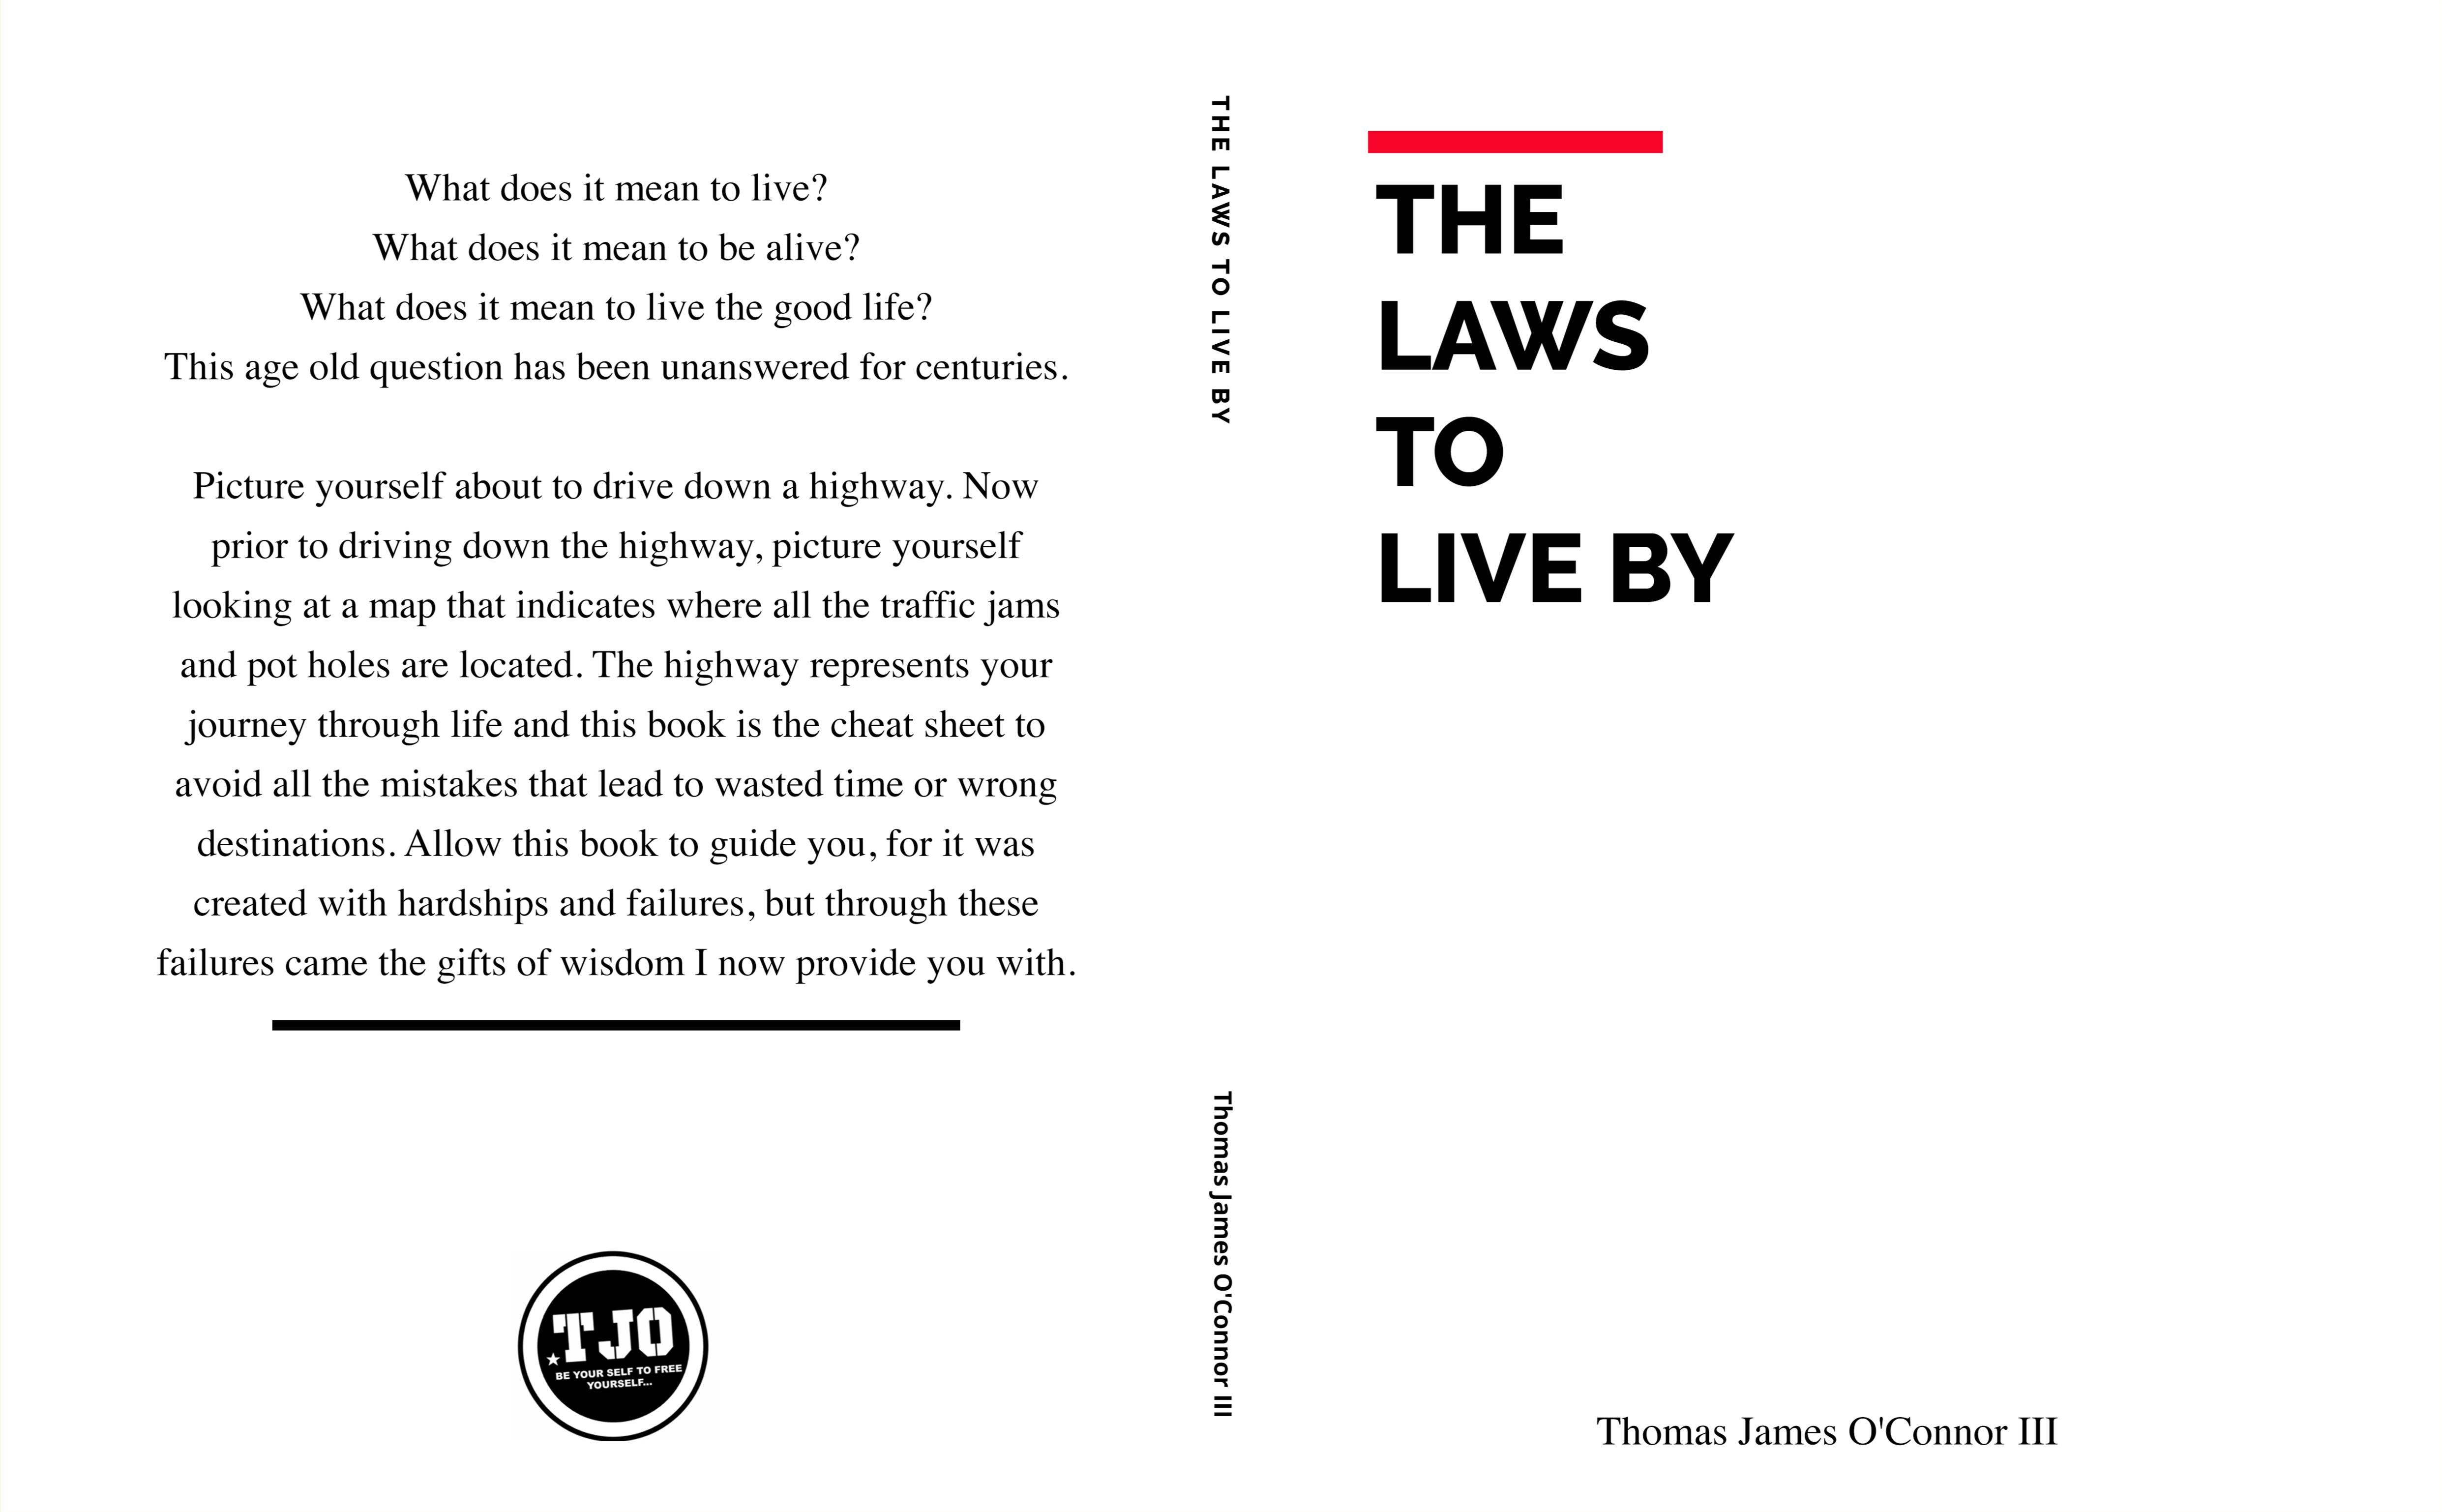 The Laws To Live By cover image